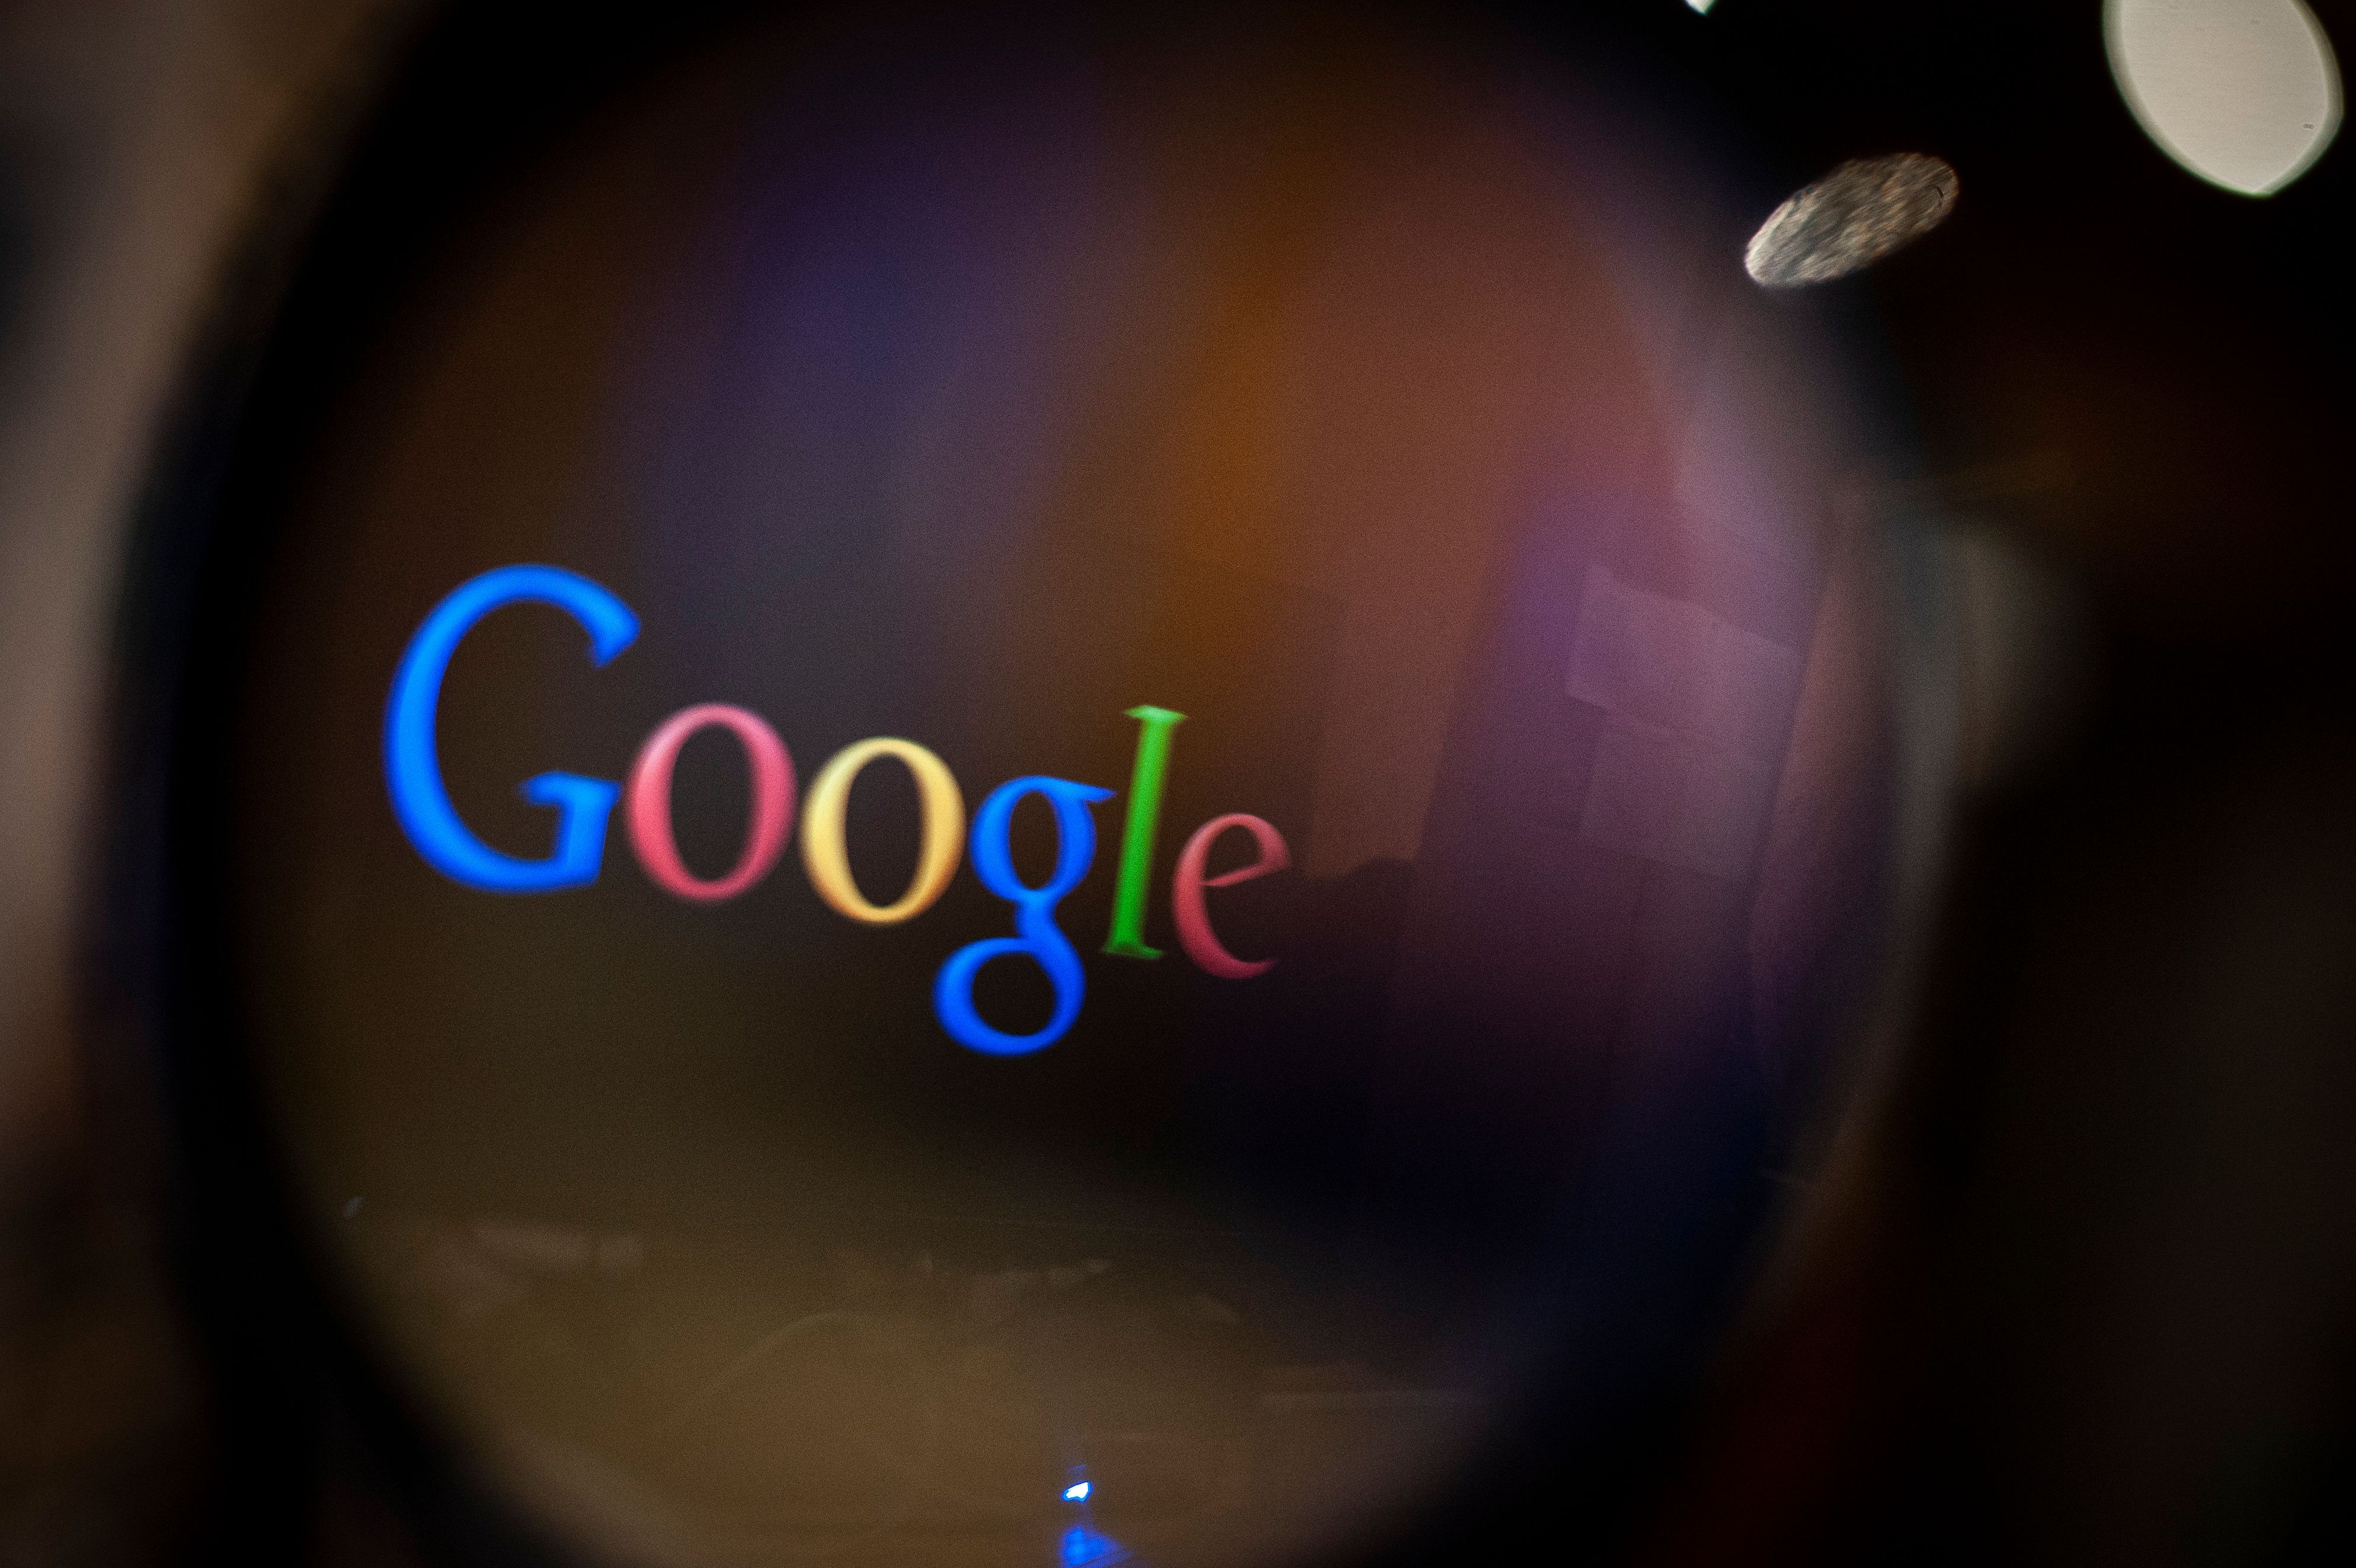 Google shutting down Google+